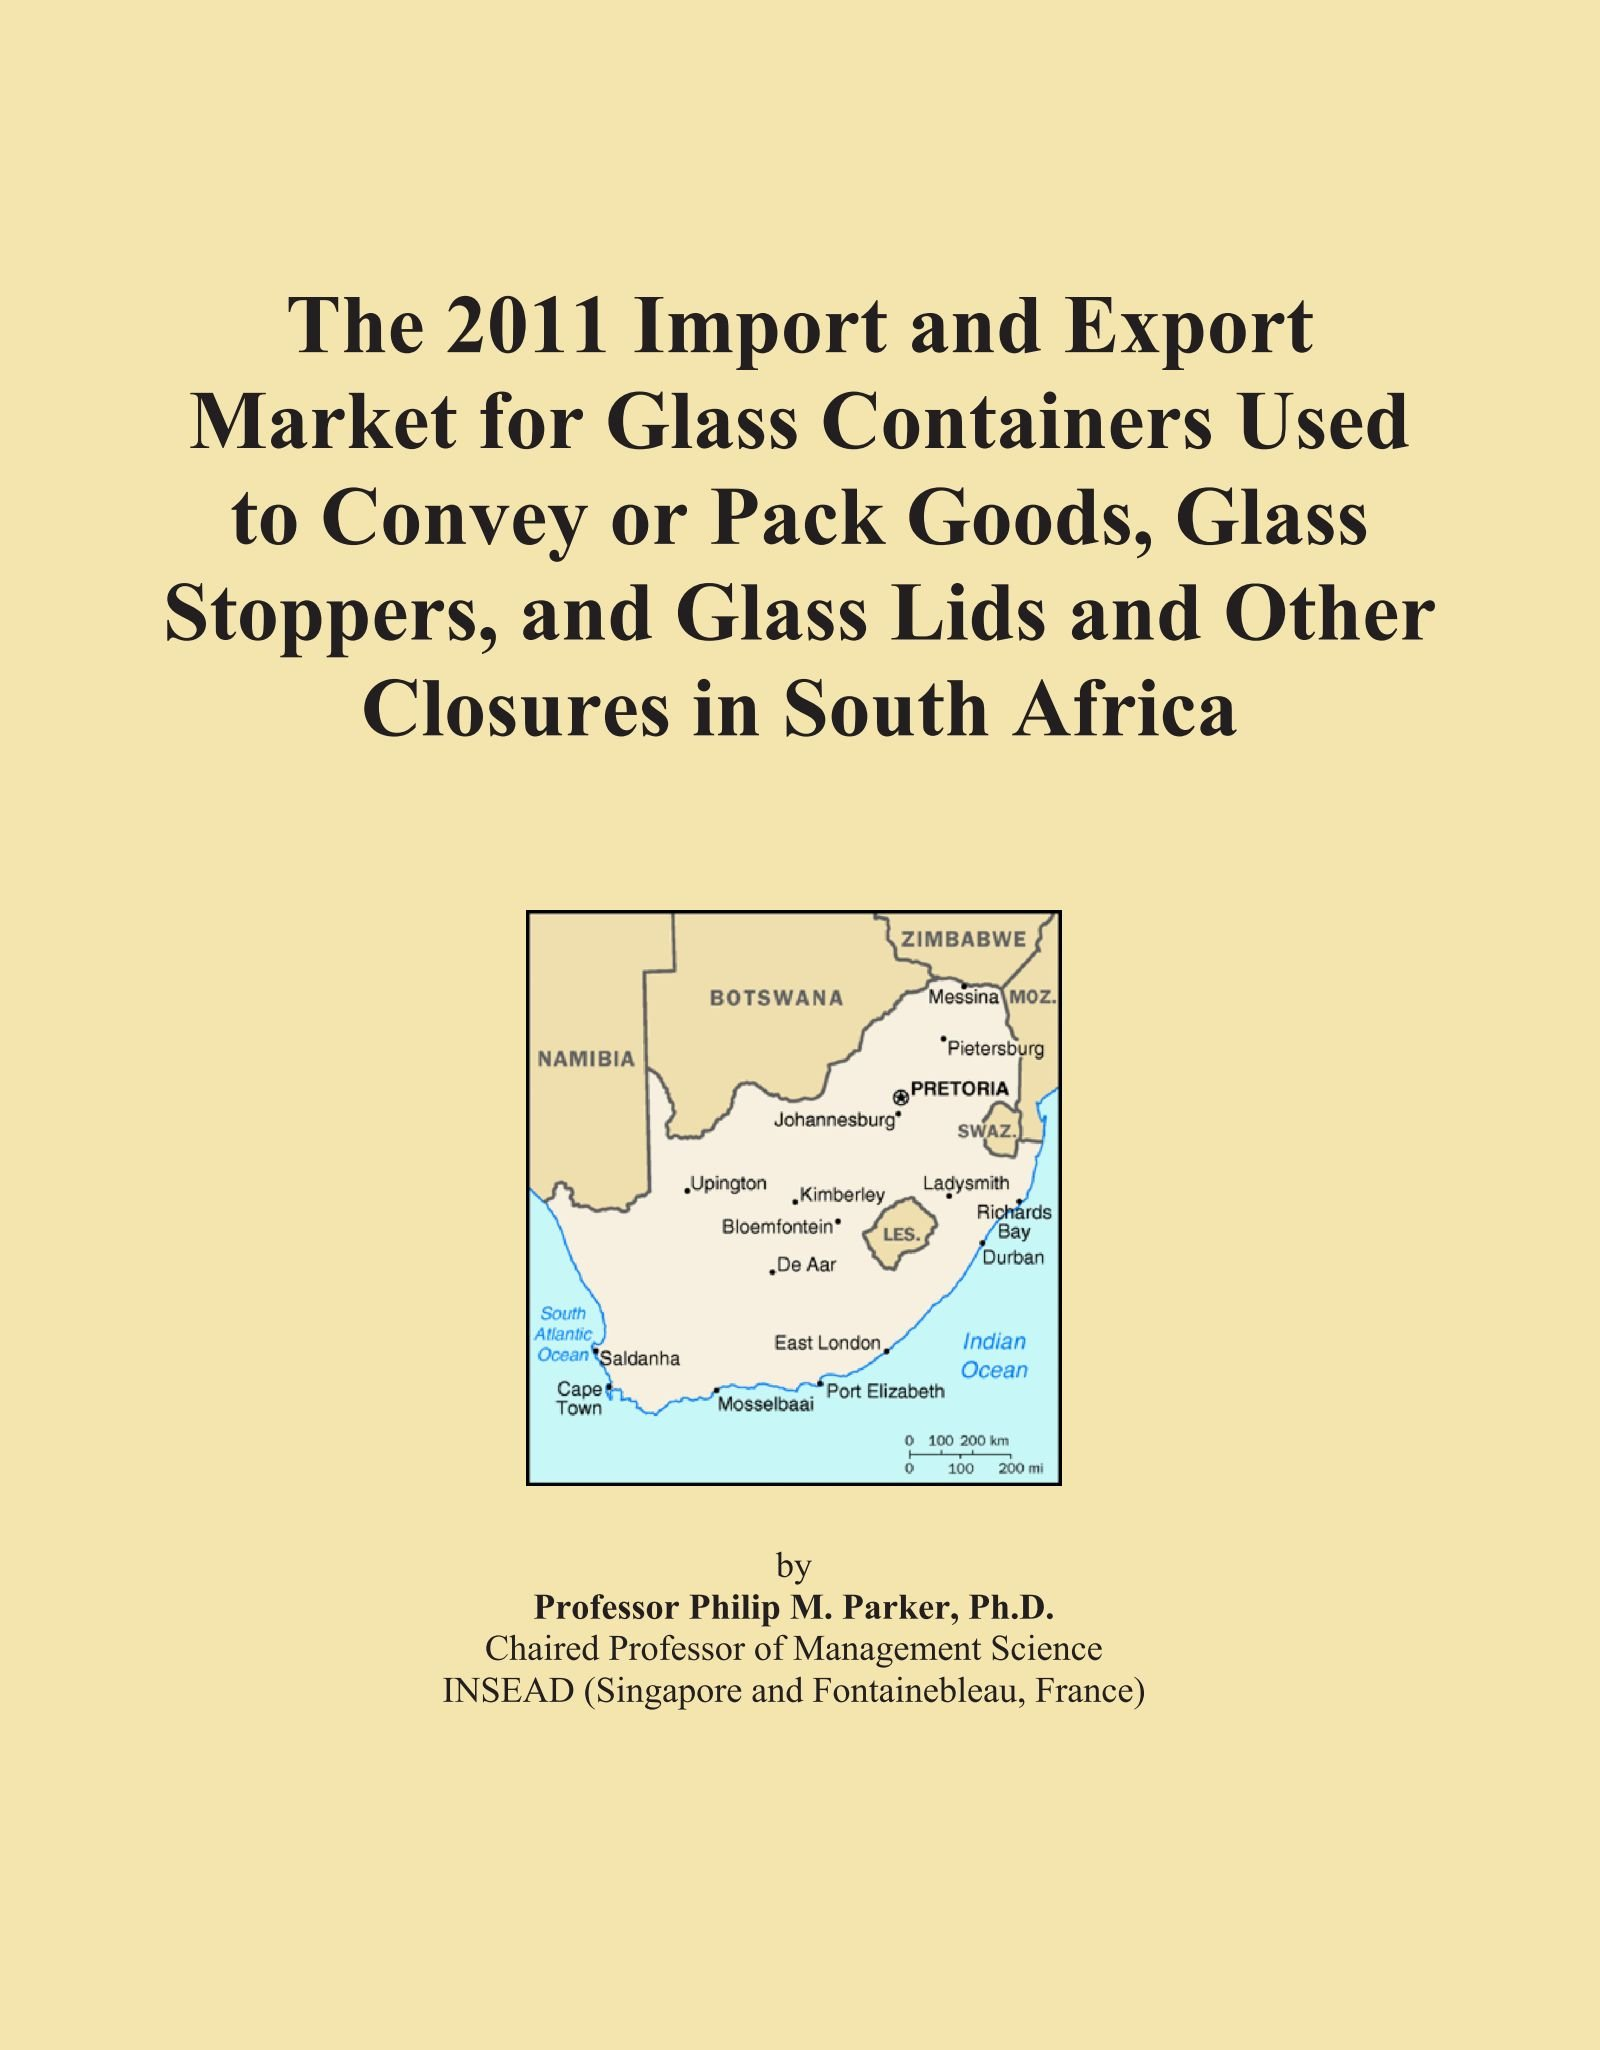 The 2011 Import and Export Market for Glass Containers Used to Convey or Pack Goods, Glass Stoppers, and Glass Lids and Other Closures in South Africa PDF